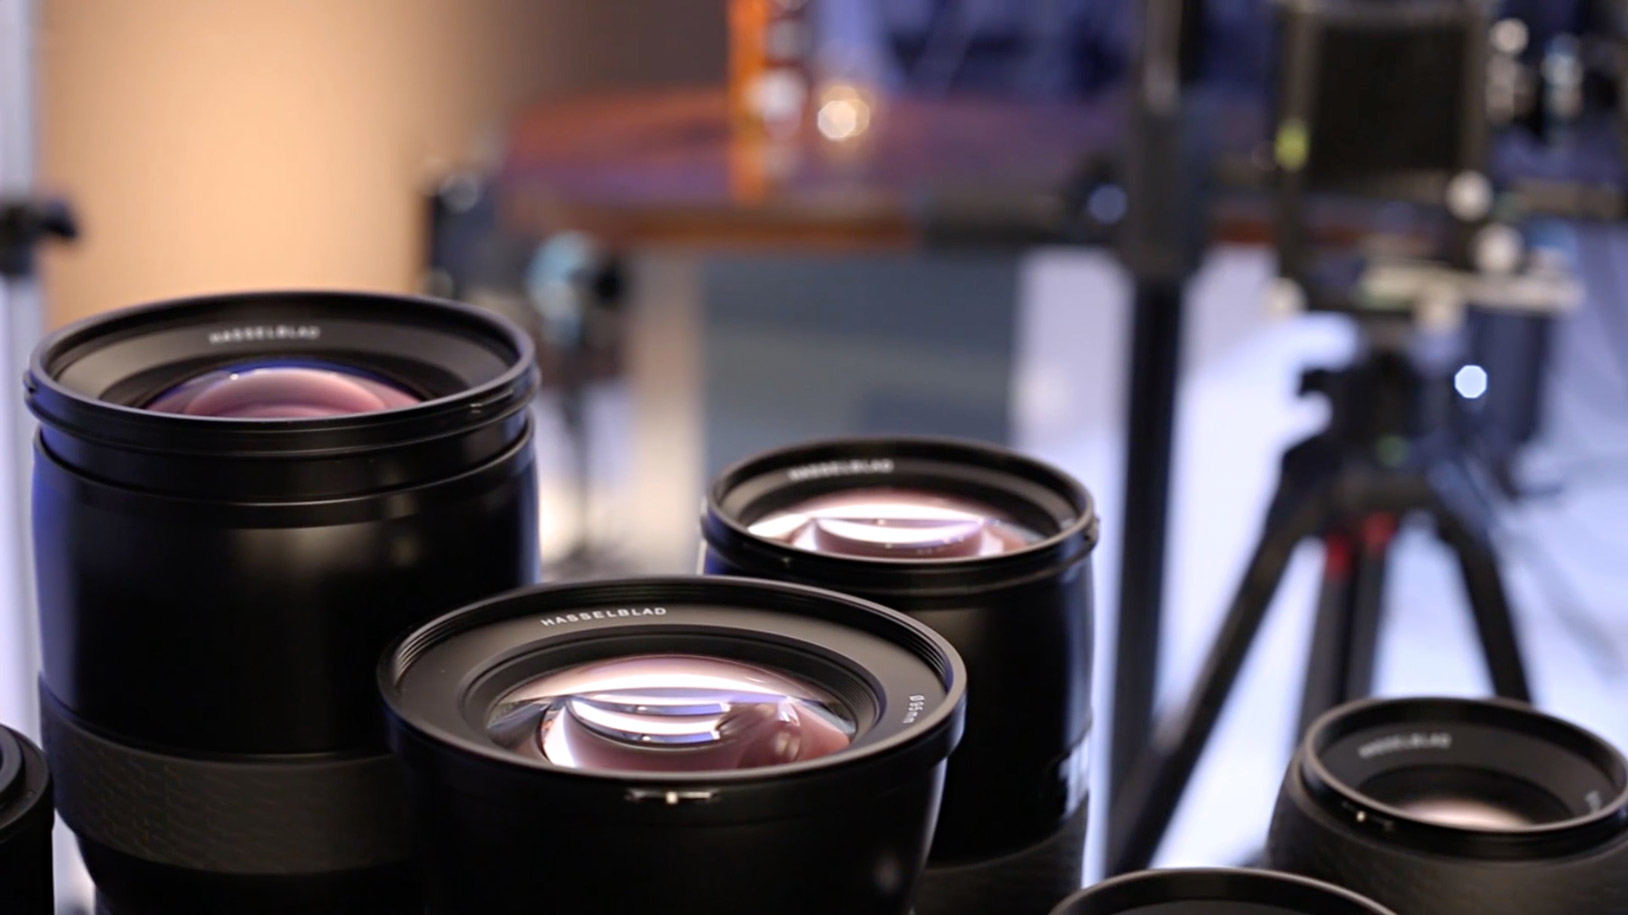 Lenses and other equipment in a photography studio